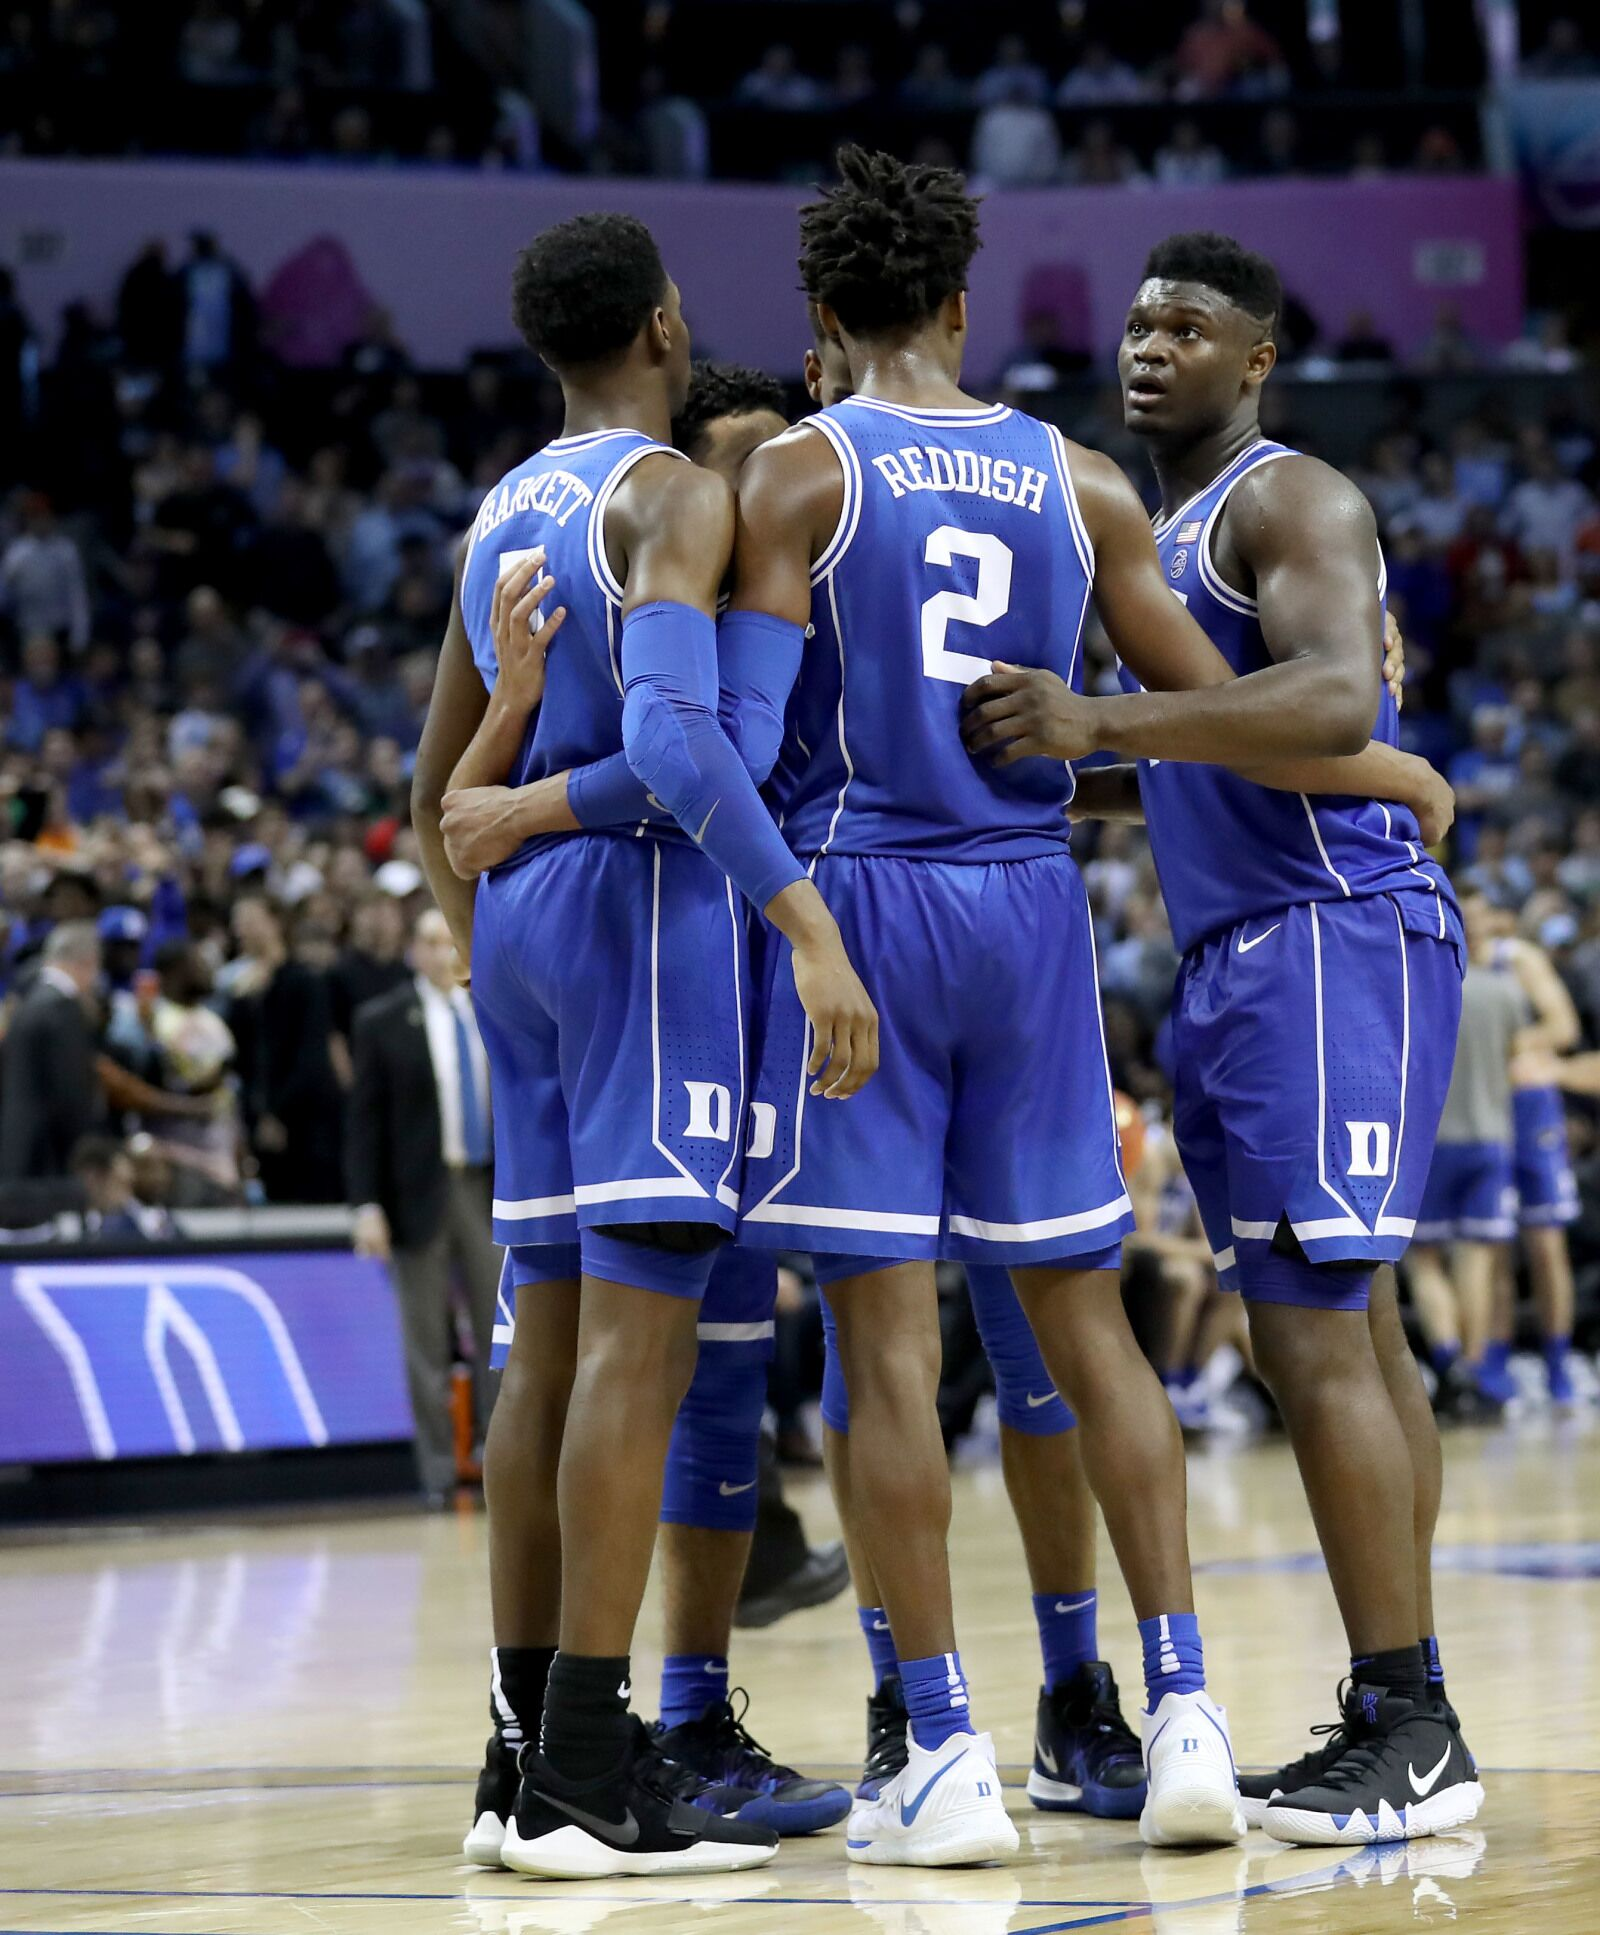 16f6d6d4719 Duke Basketball  Blue Devils playing for ACC Title against Florida State